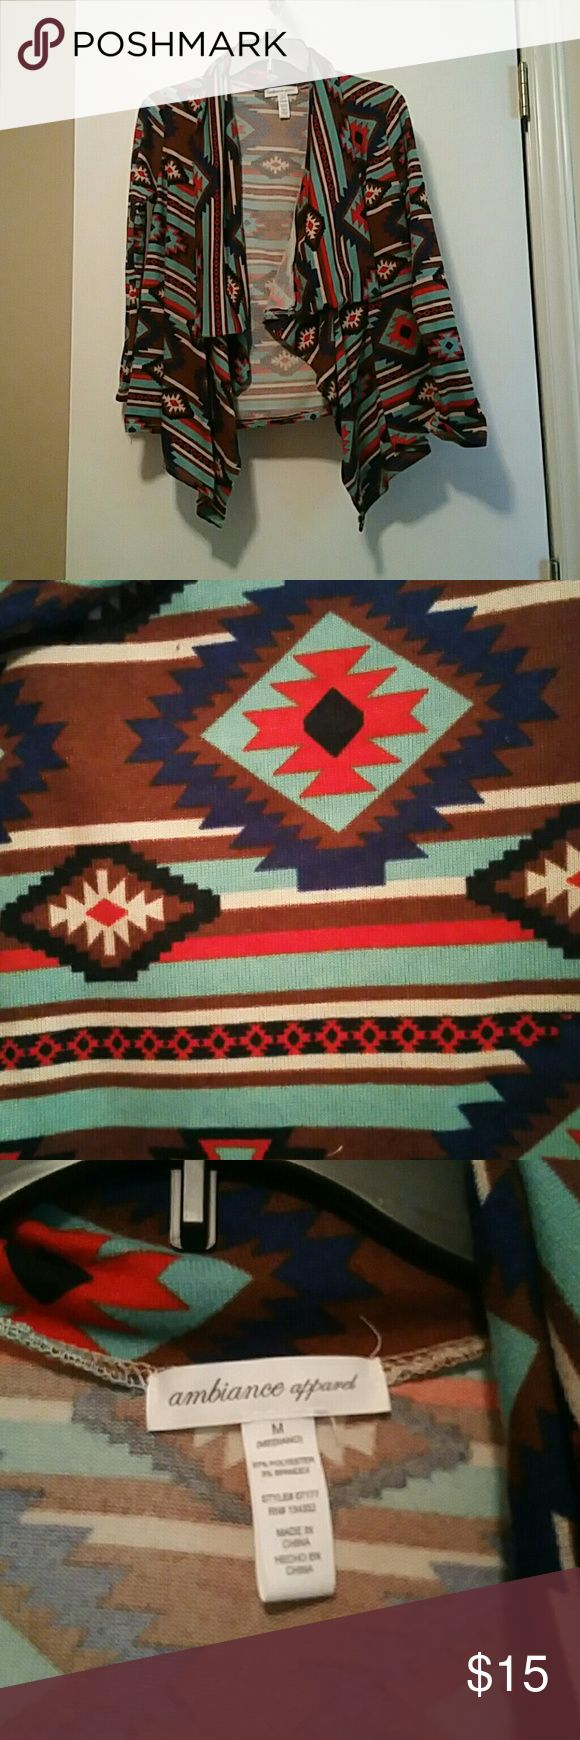 NWOT Tribal Print Cardigan Tribal print cardigan size medium. Can fit a small loosely and medium perfect. New with out tags never worn besides to try on at store. Comes from a smoke free home and willing to take offers just no low blow offers! Ambiance Apparel Sweaters Cardigans